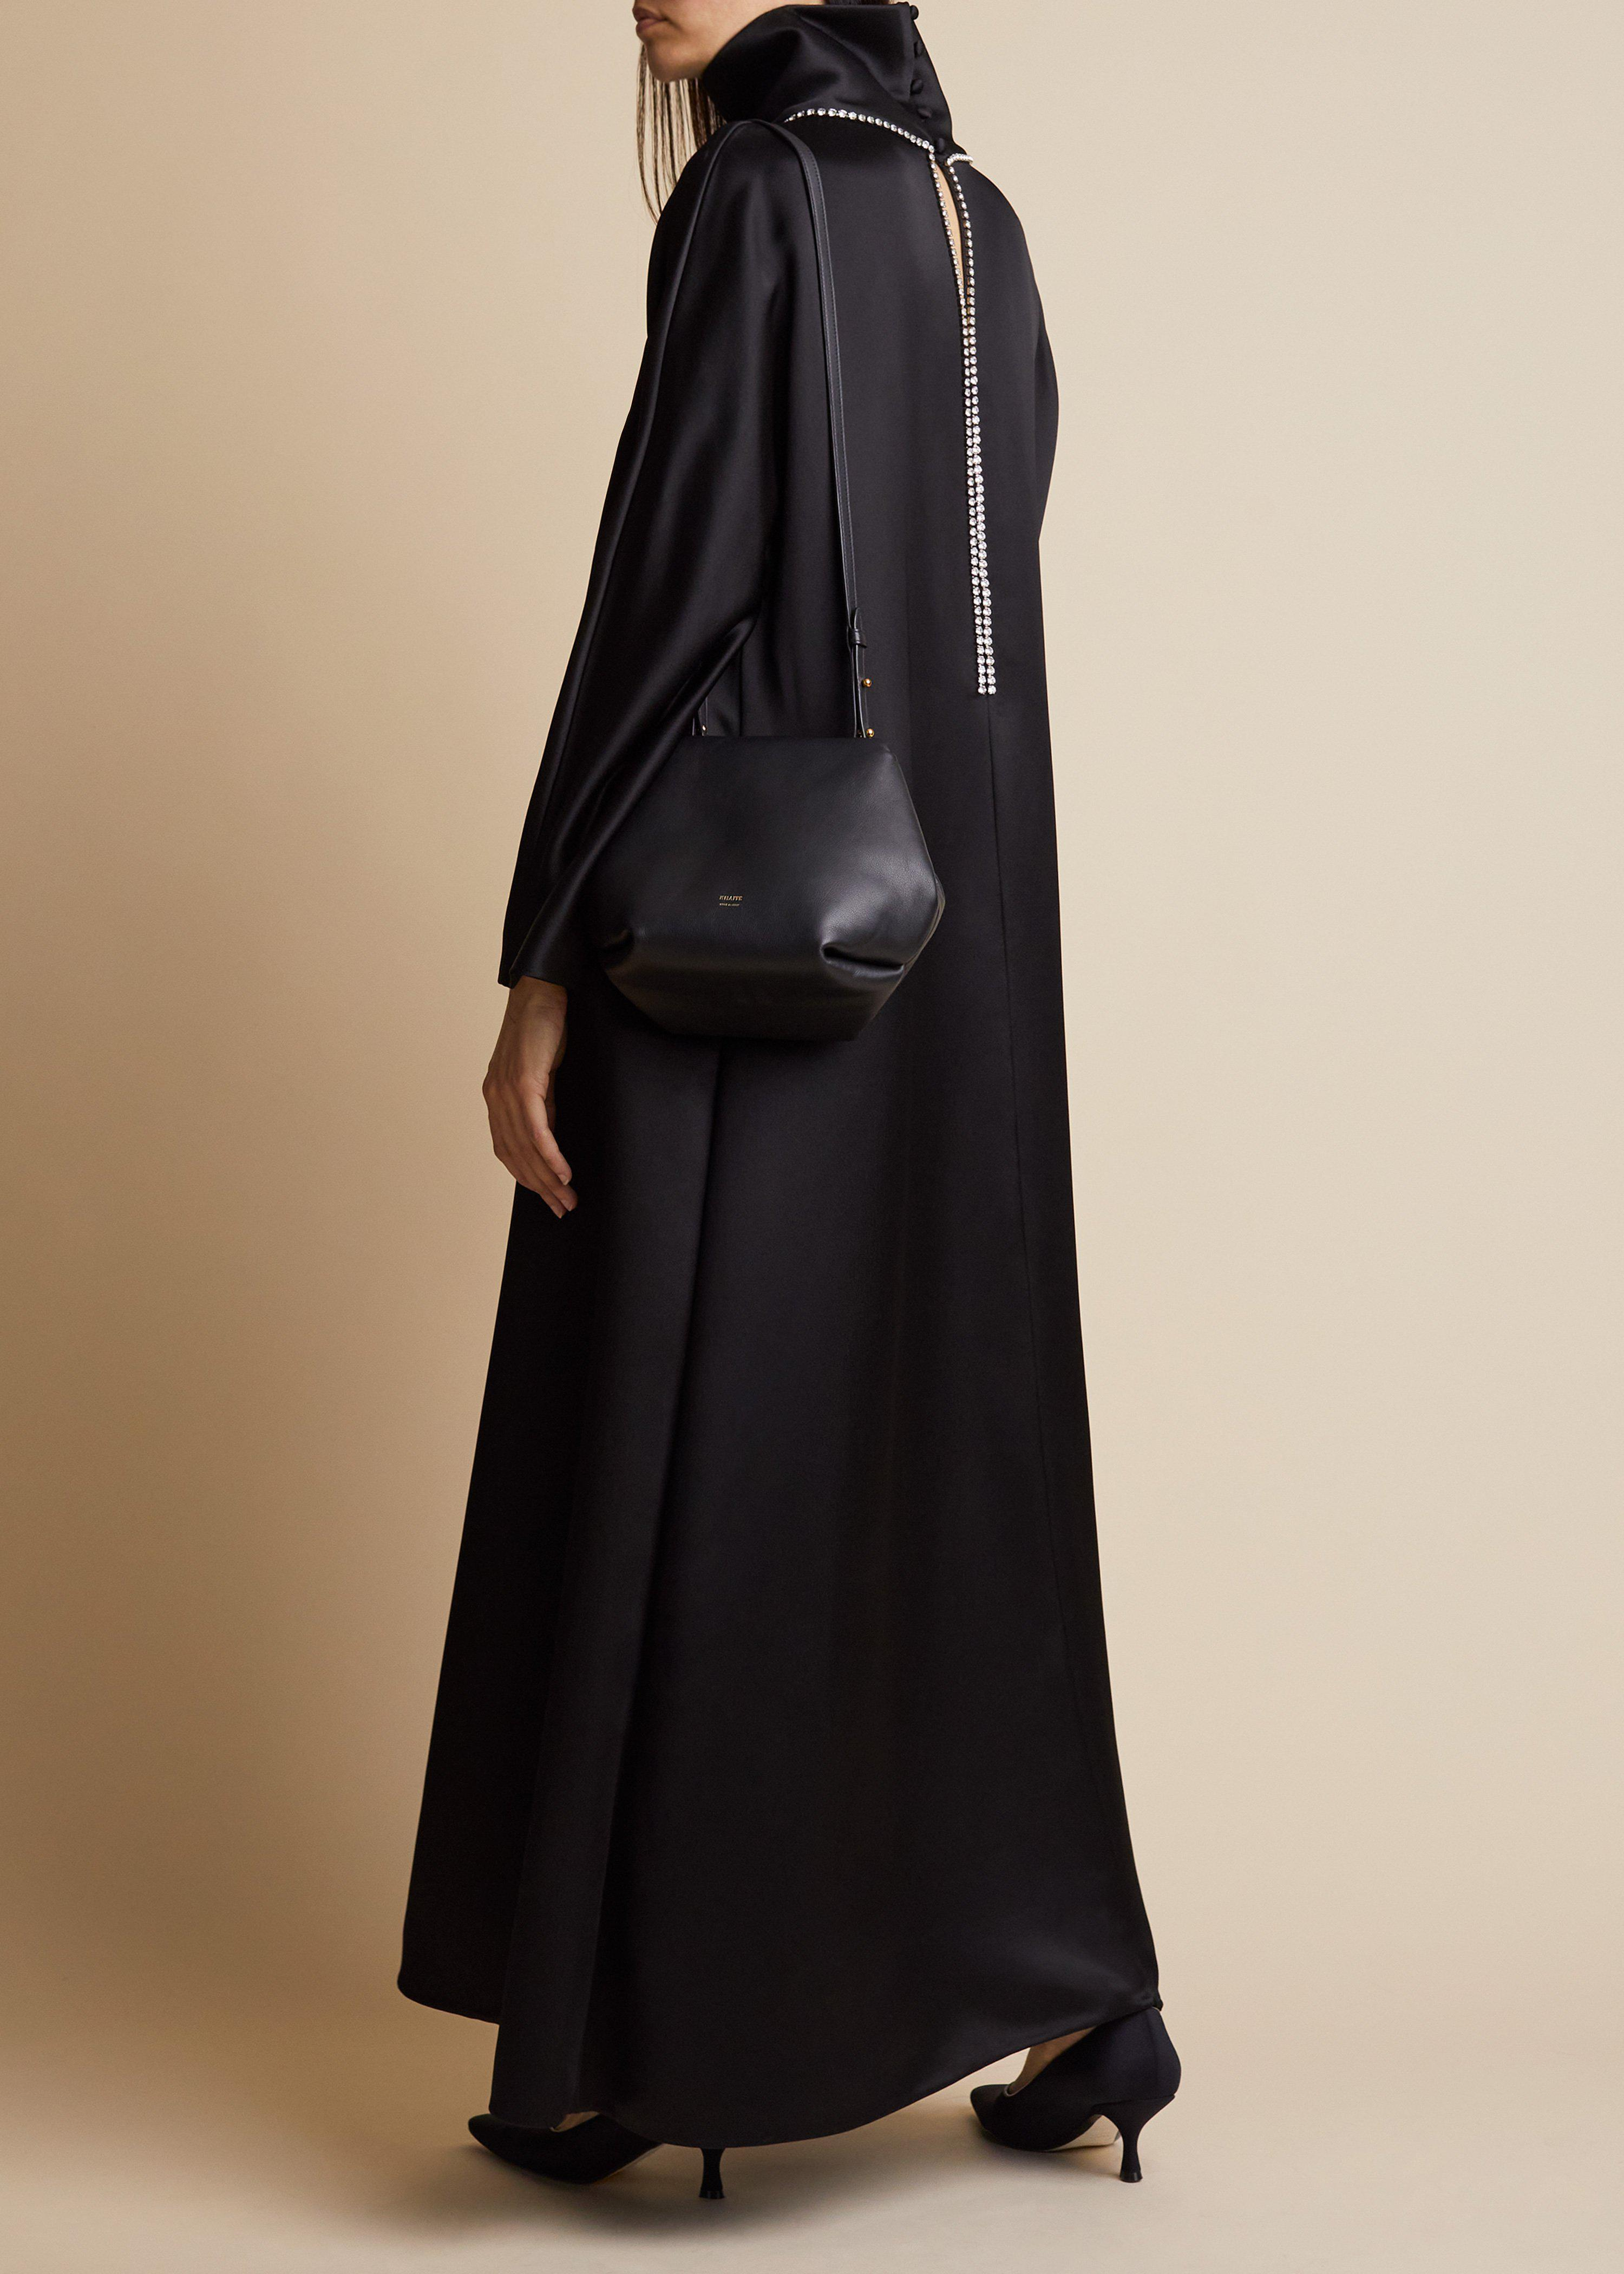 The Marin Dress in Black with Crystals